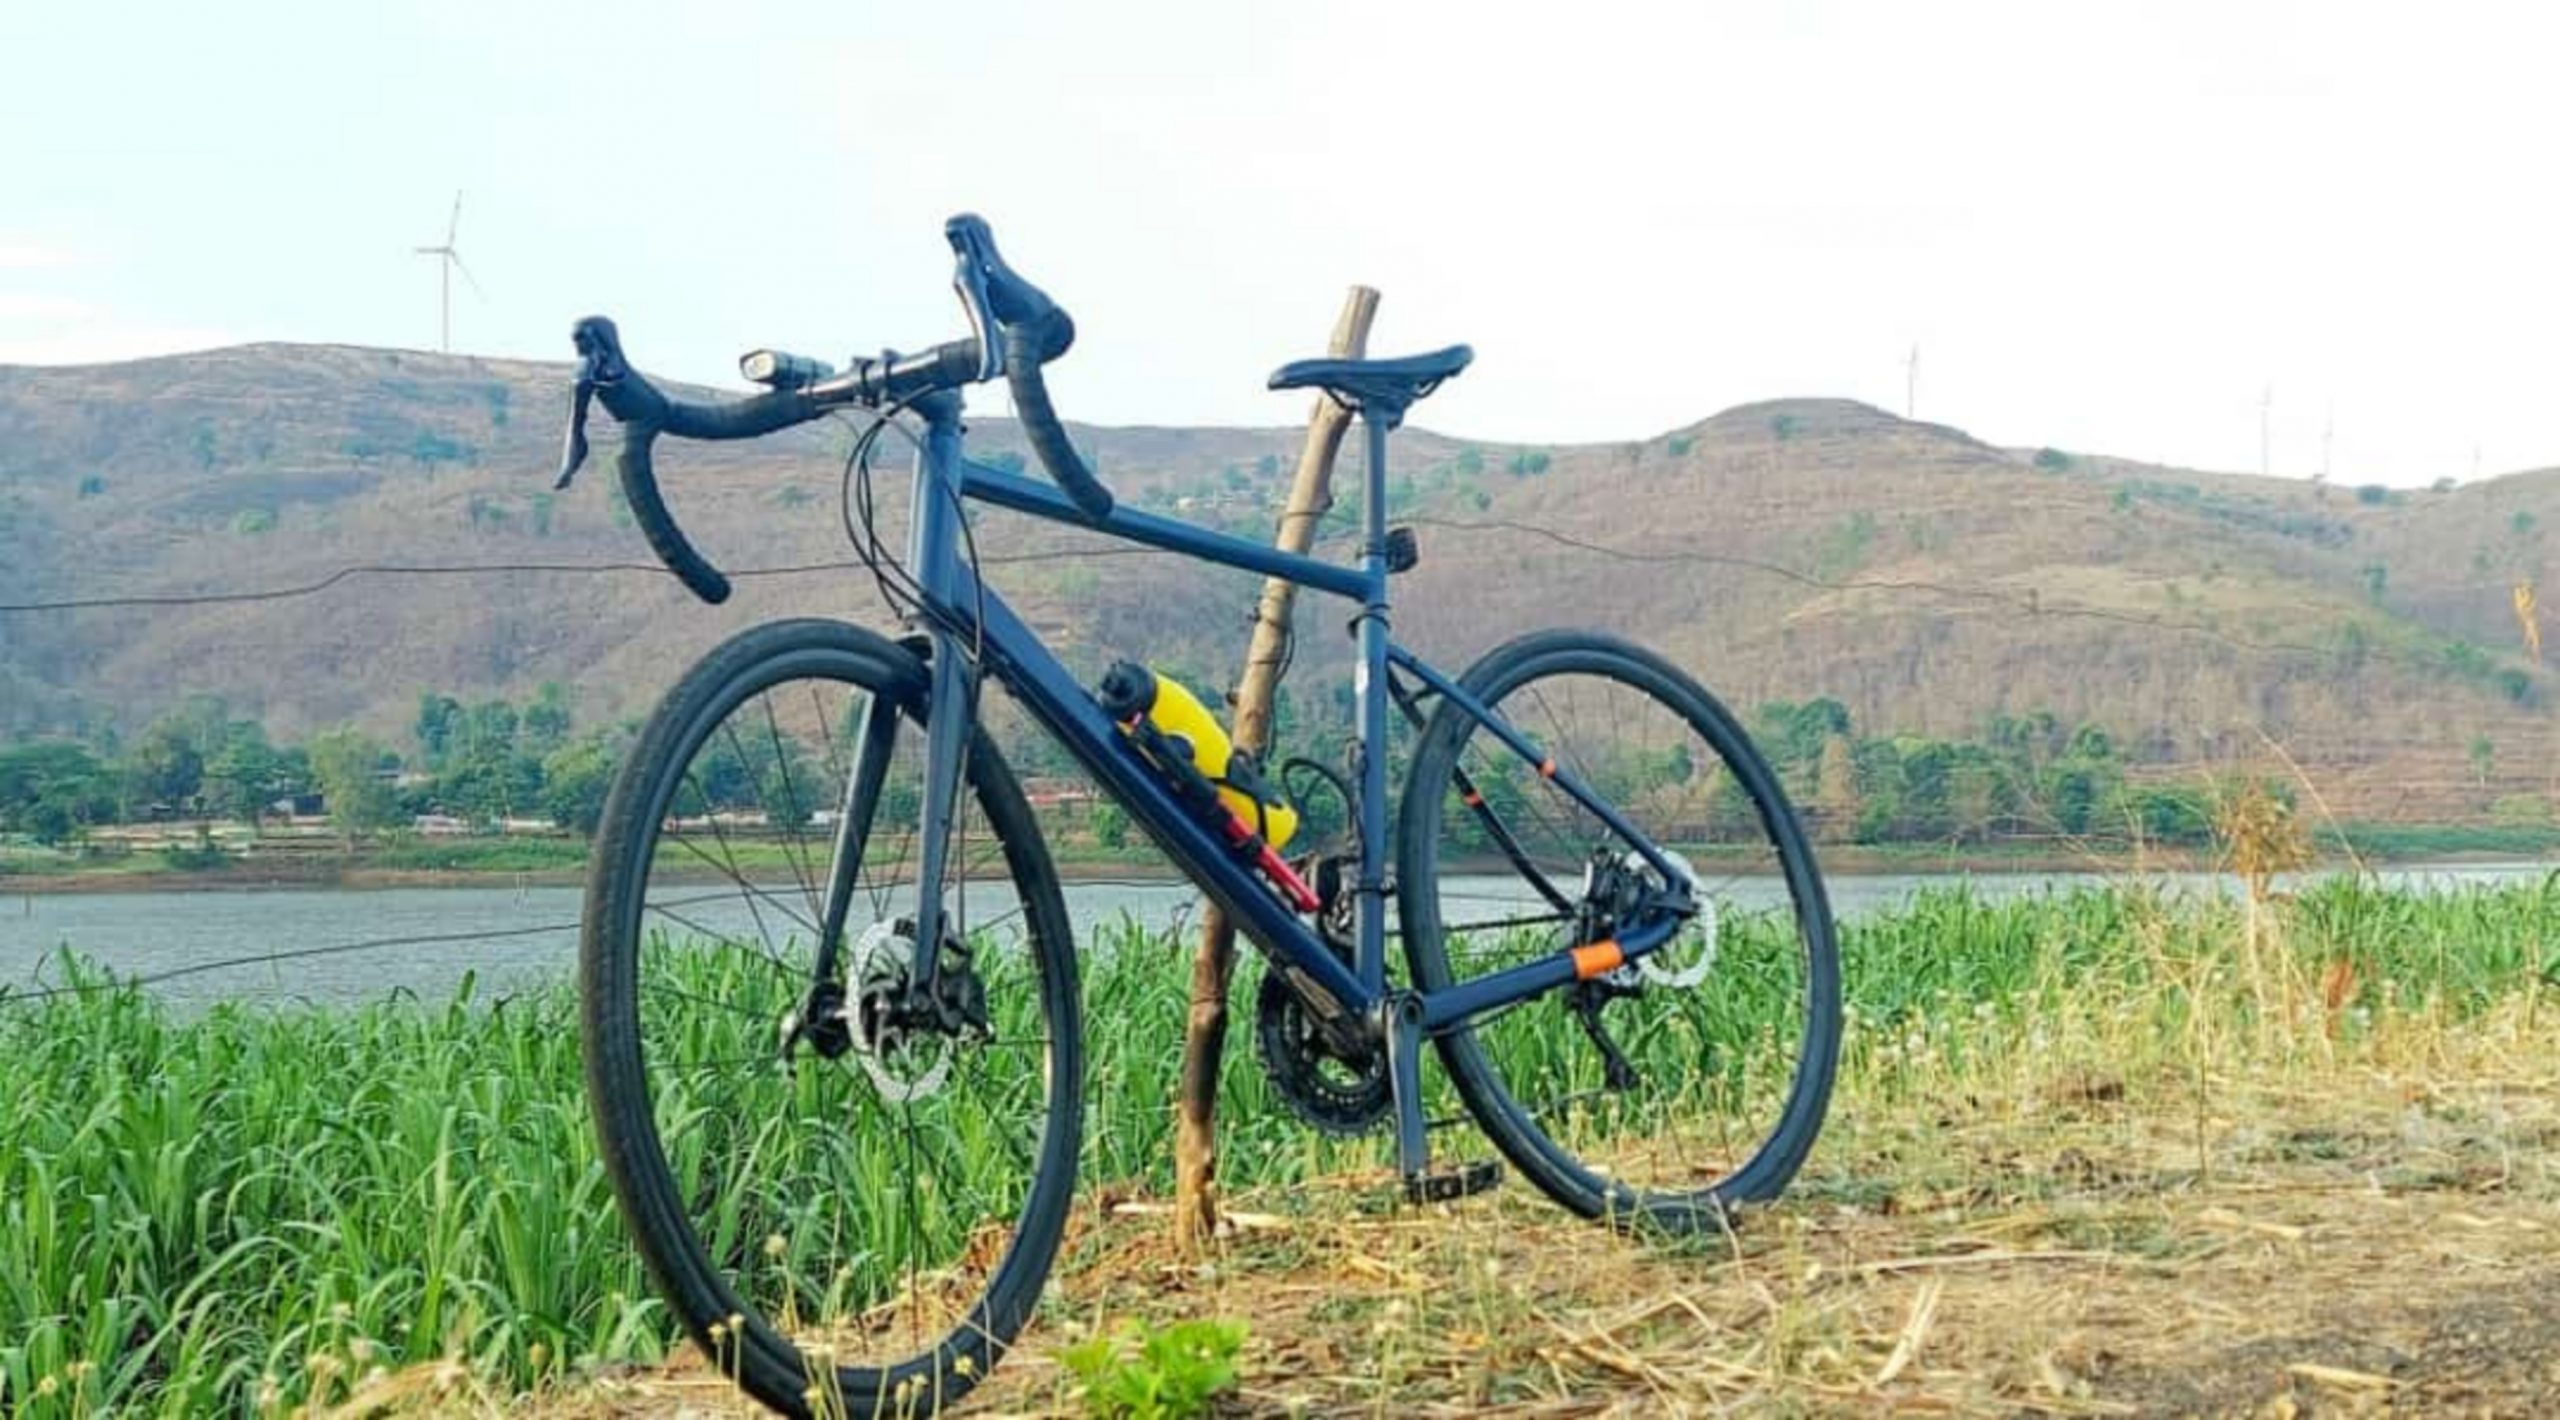 Cycle in the farm